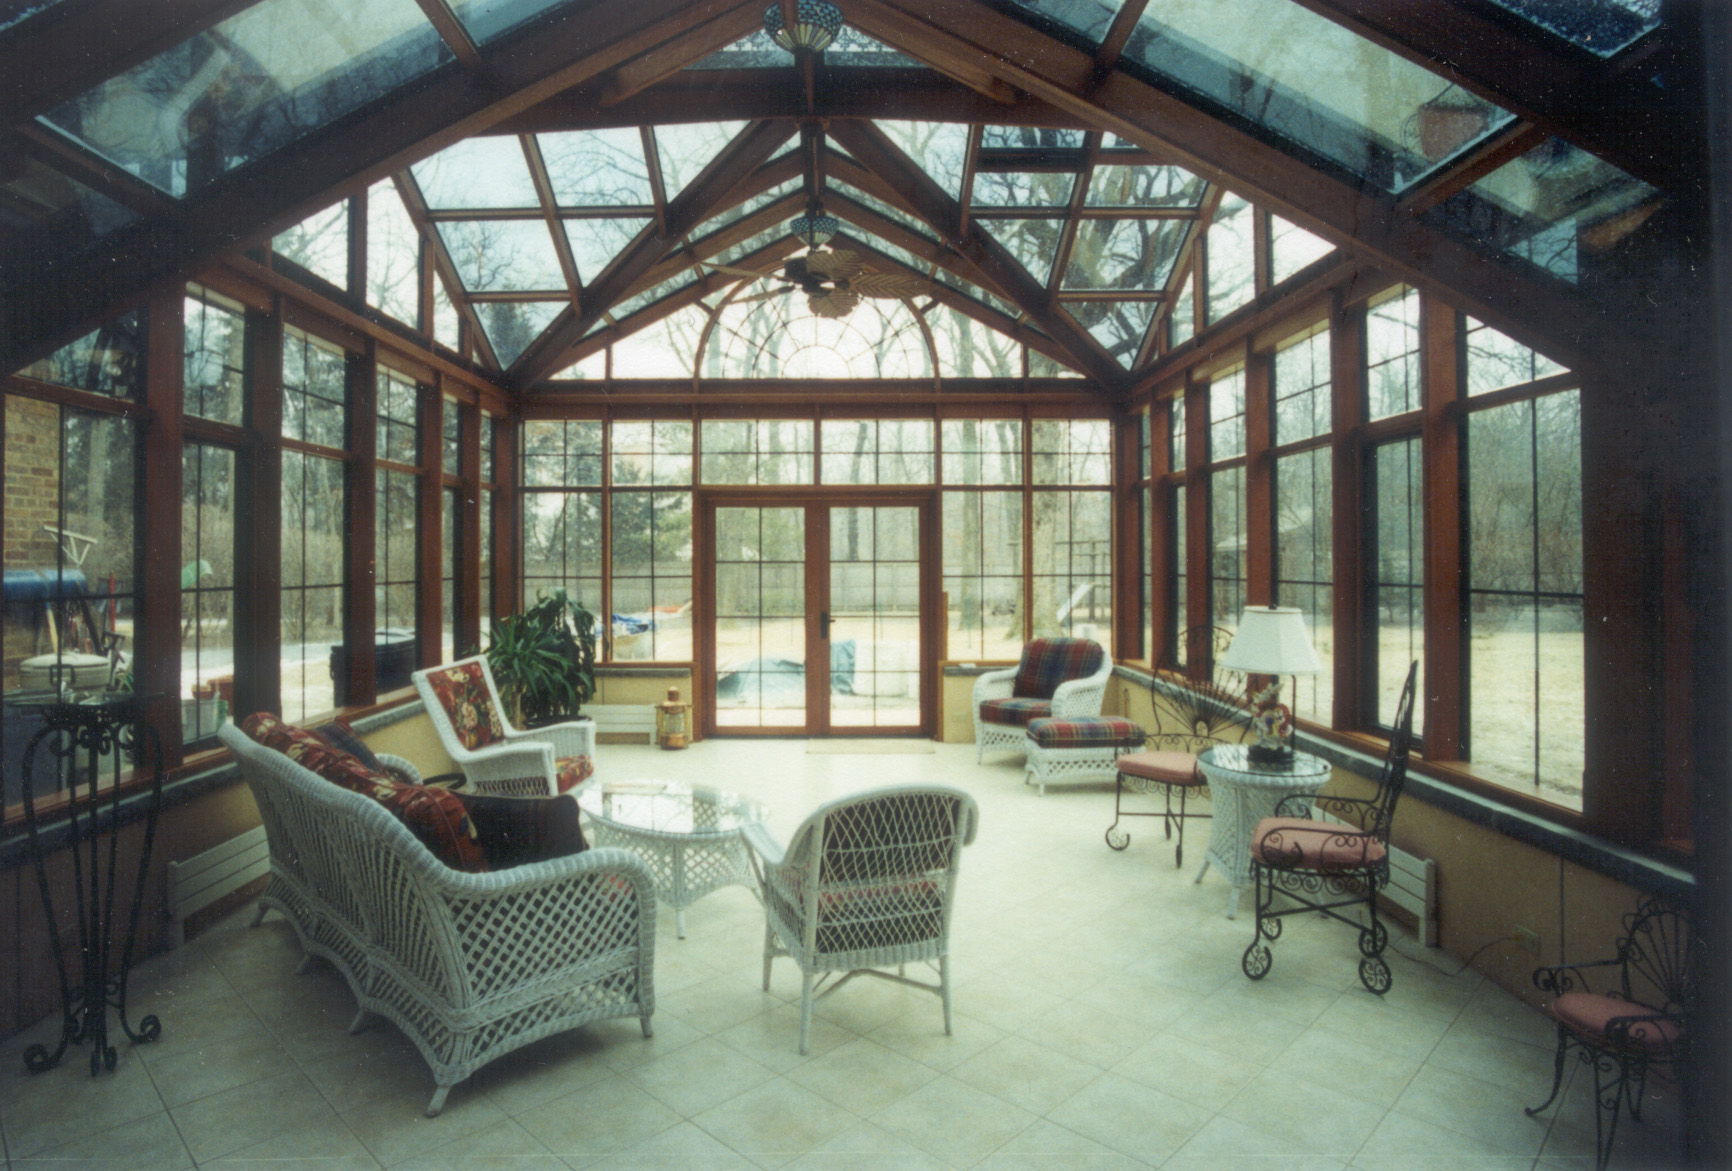 Sun room design ideas interior design ideas for How to design a sunroom